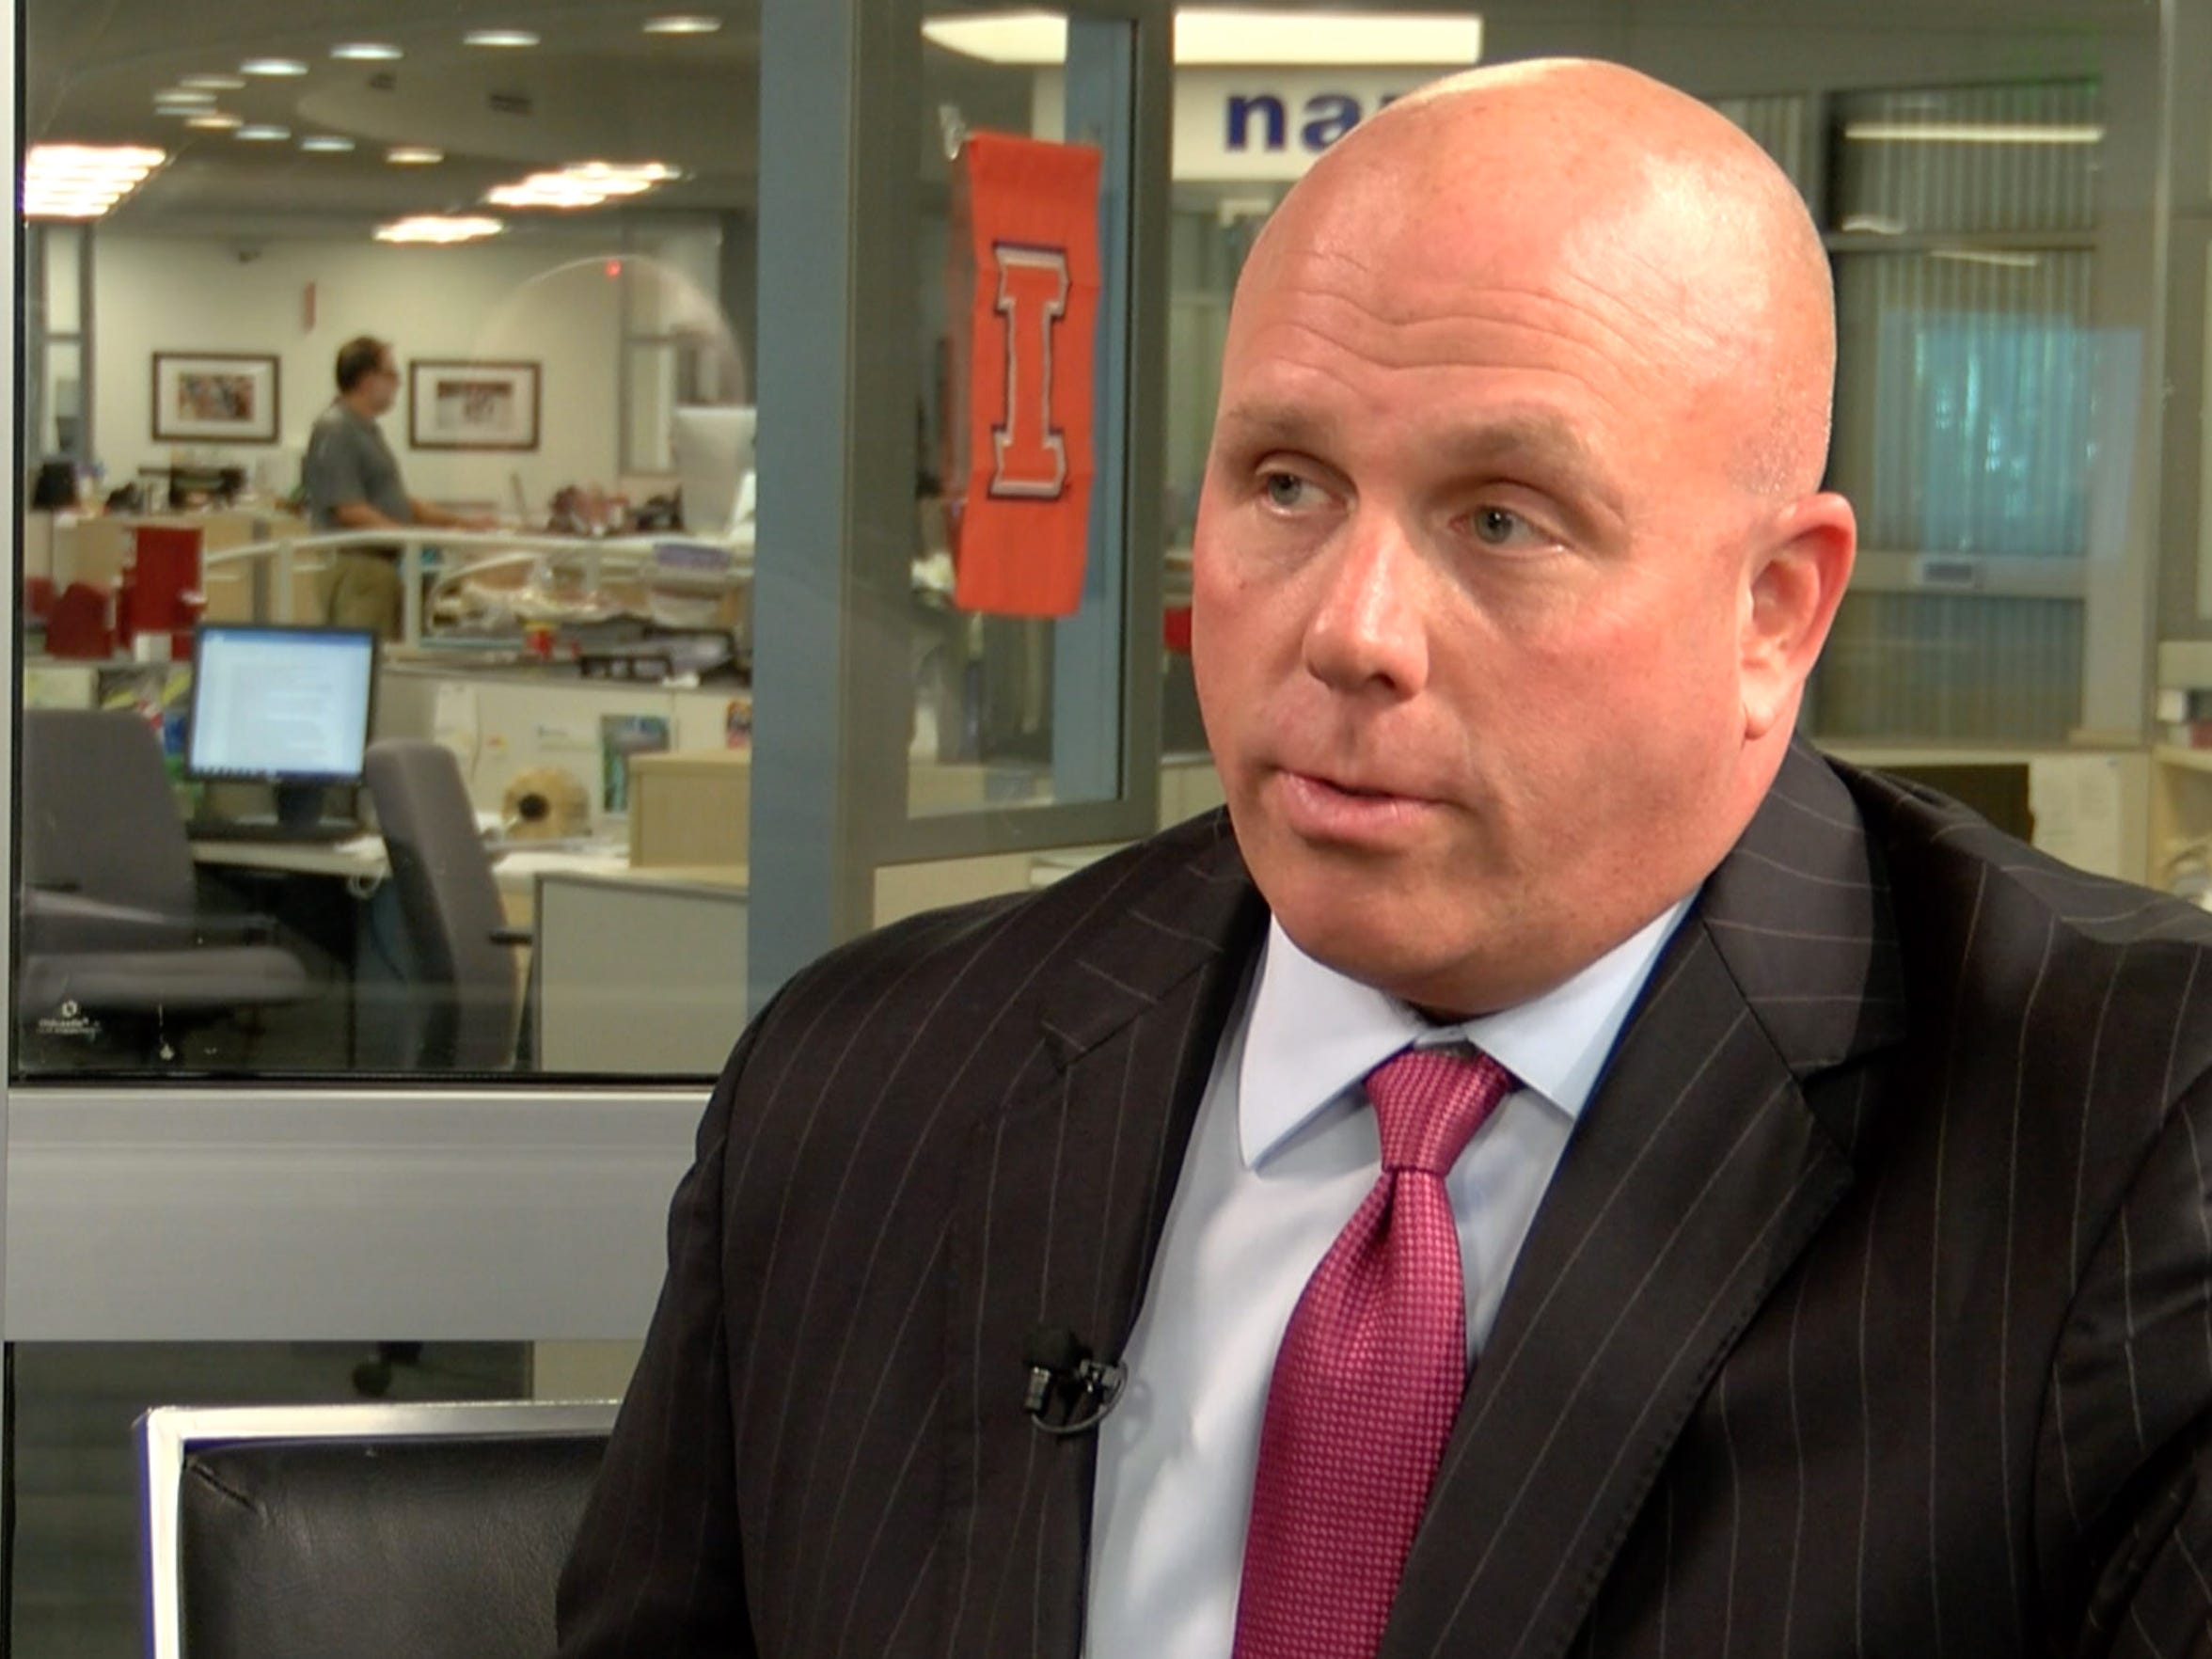 William Dean, a Miami lawyer specializing in elder abuse